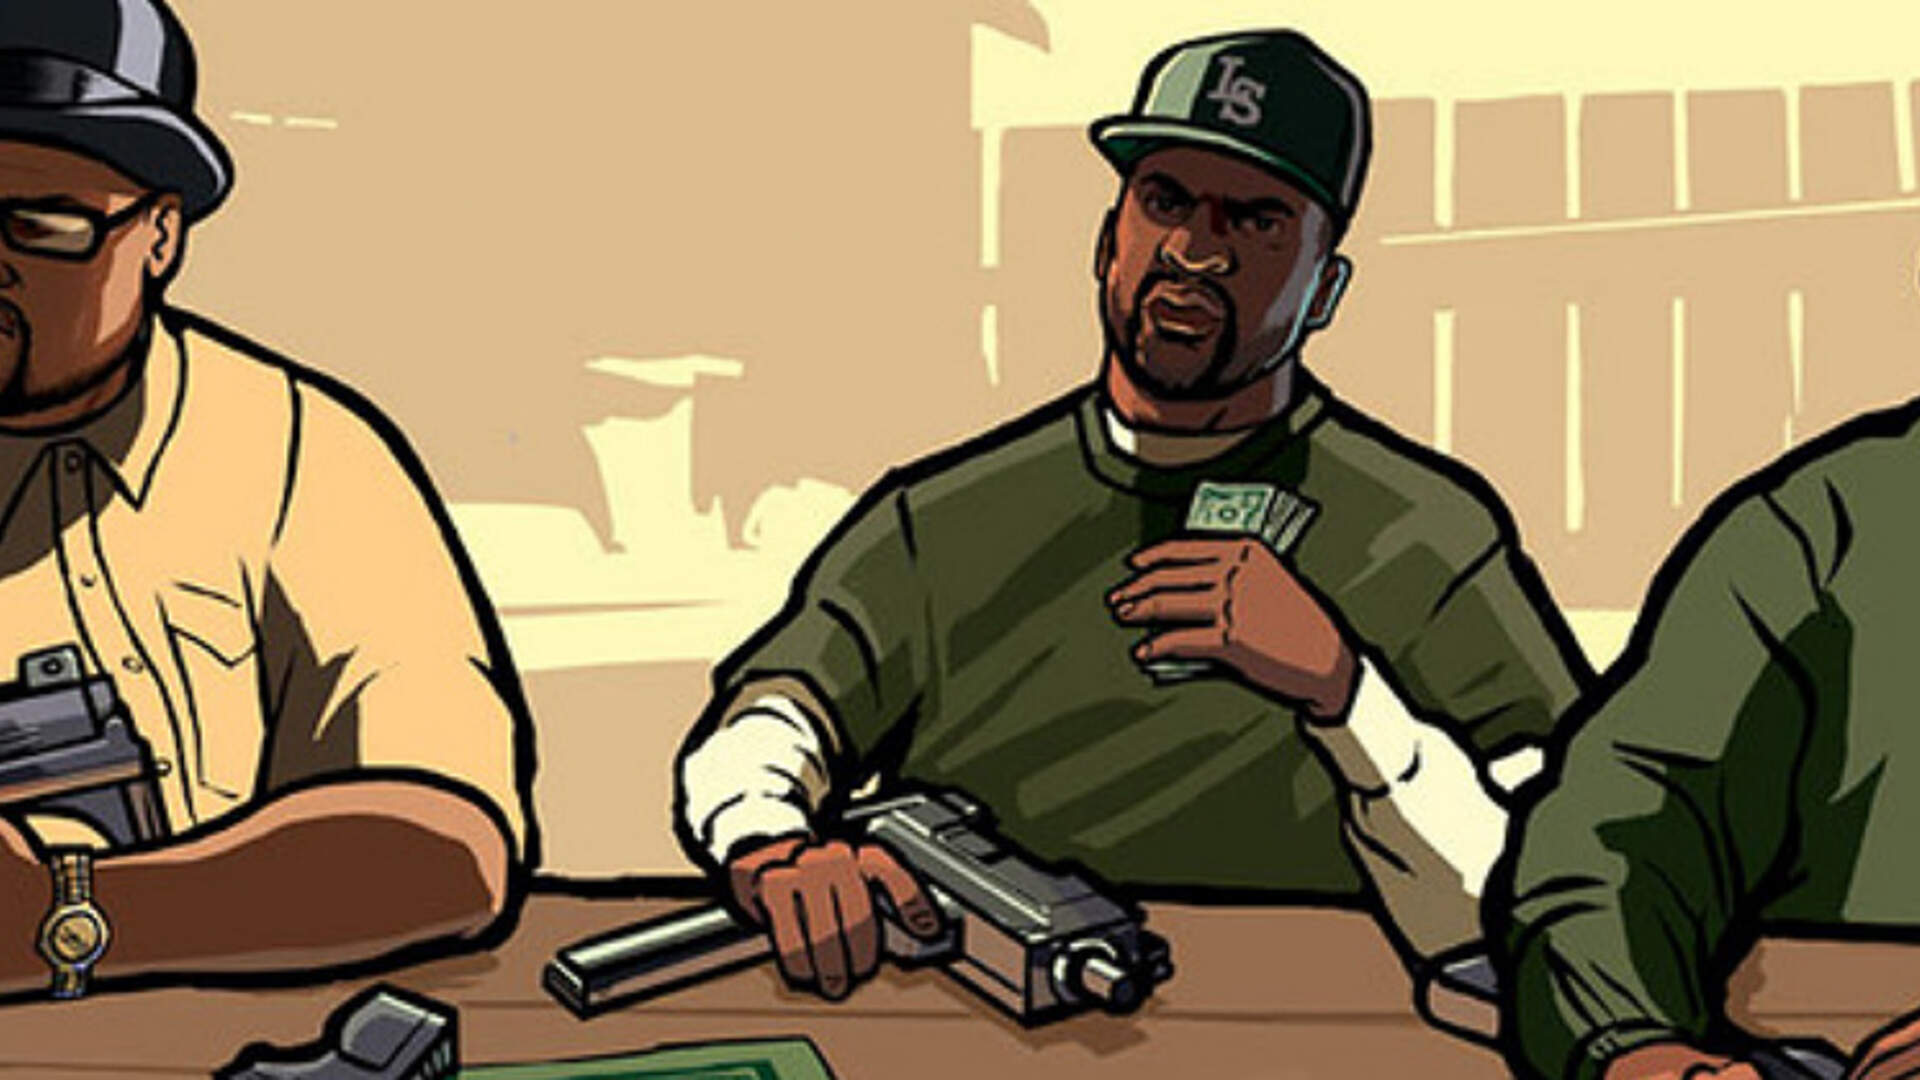 The 15 Best Games Since 2000, Number 8: Grand Theft Auto: San Andreas